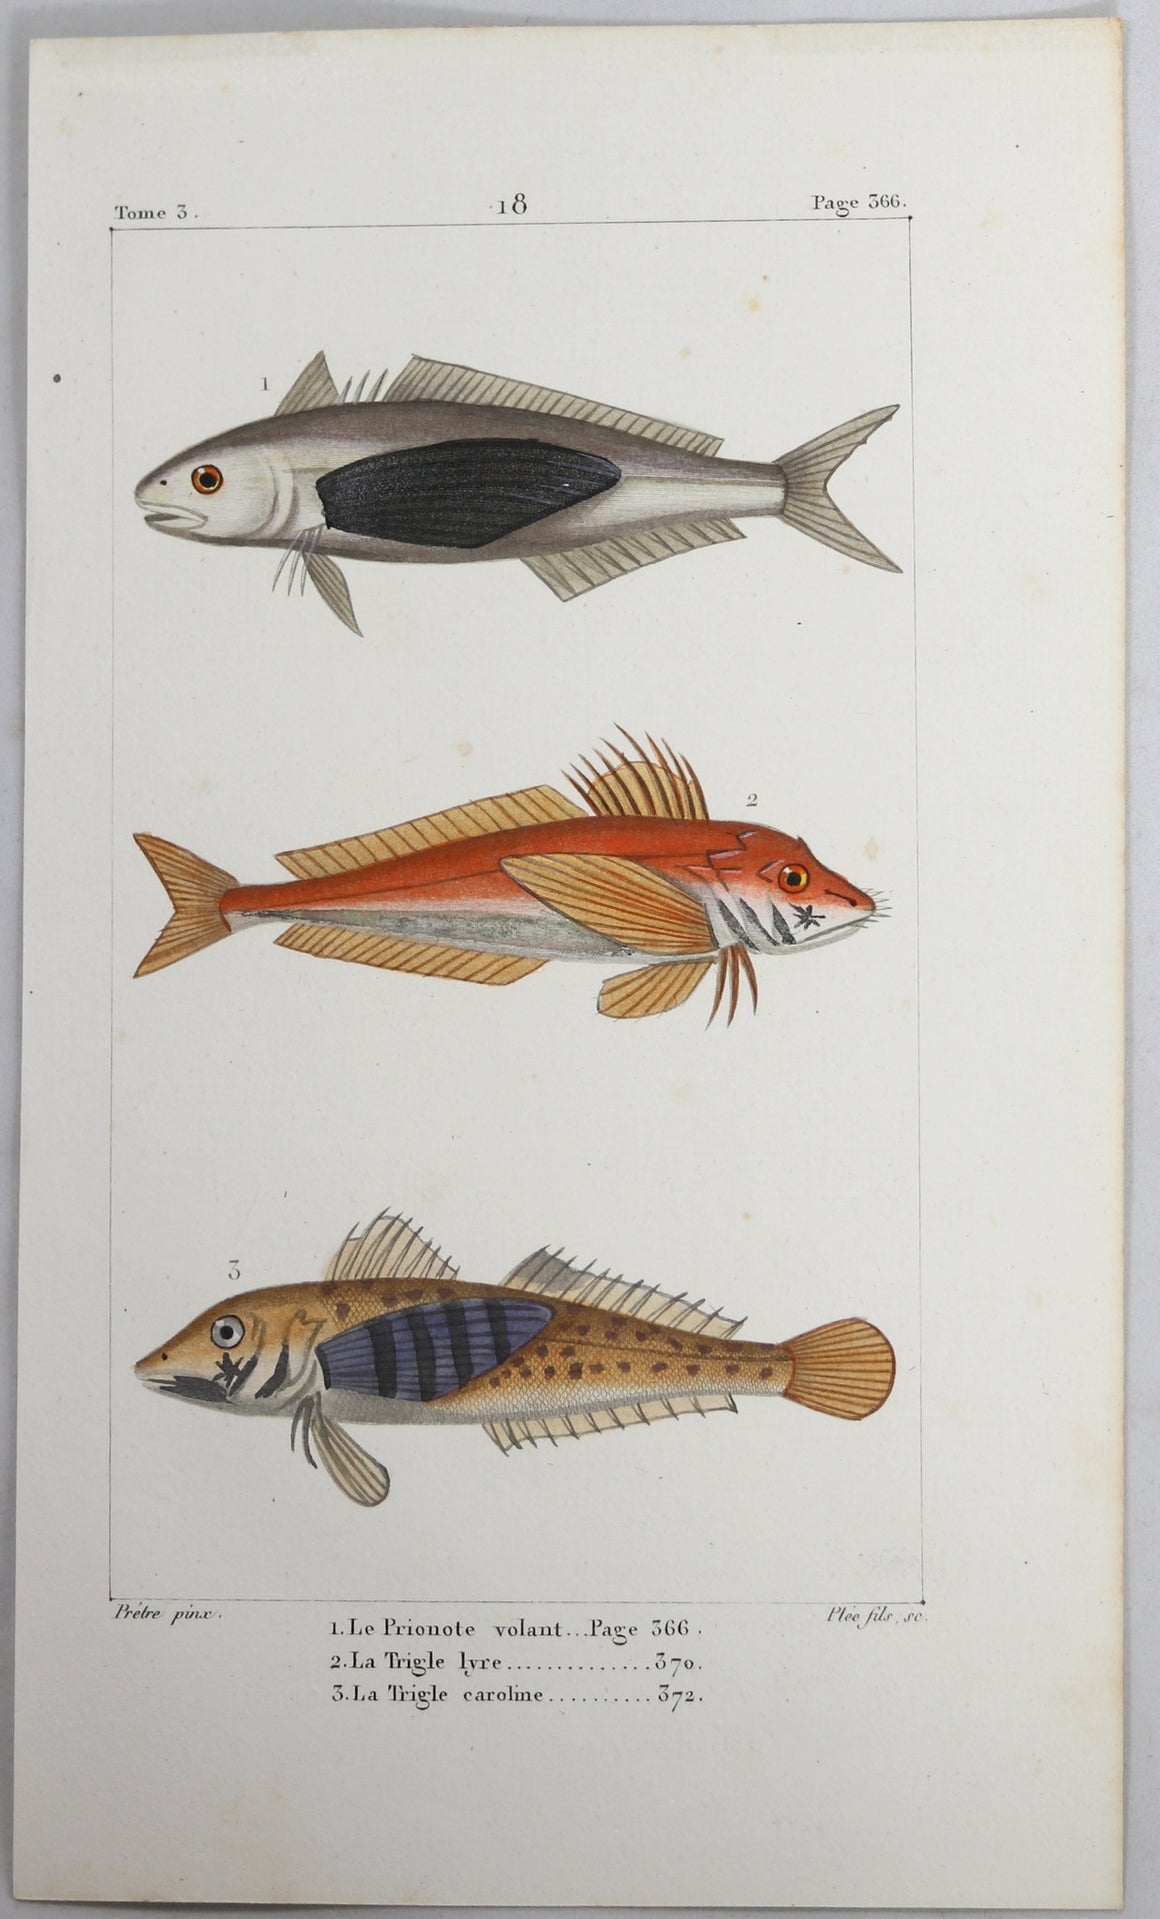 @1819 French Prêtre fish print with 3 species (Trygla..)